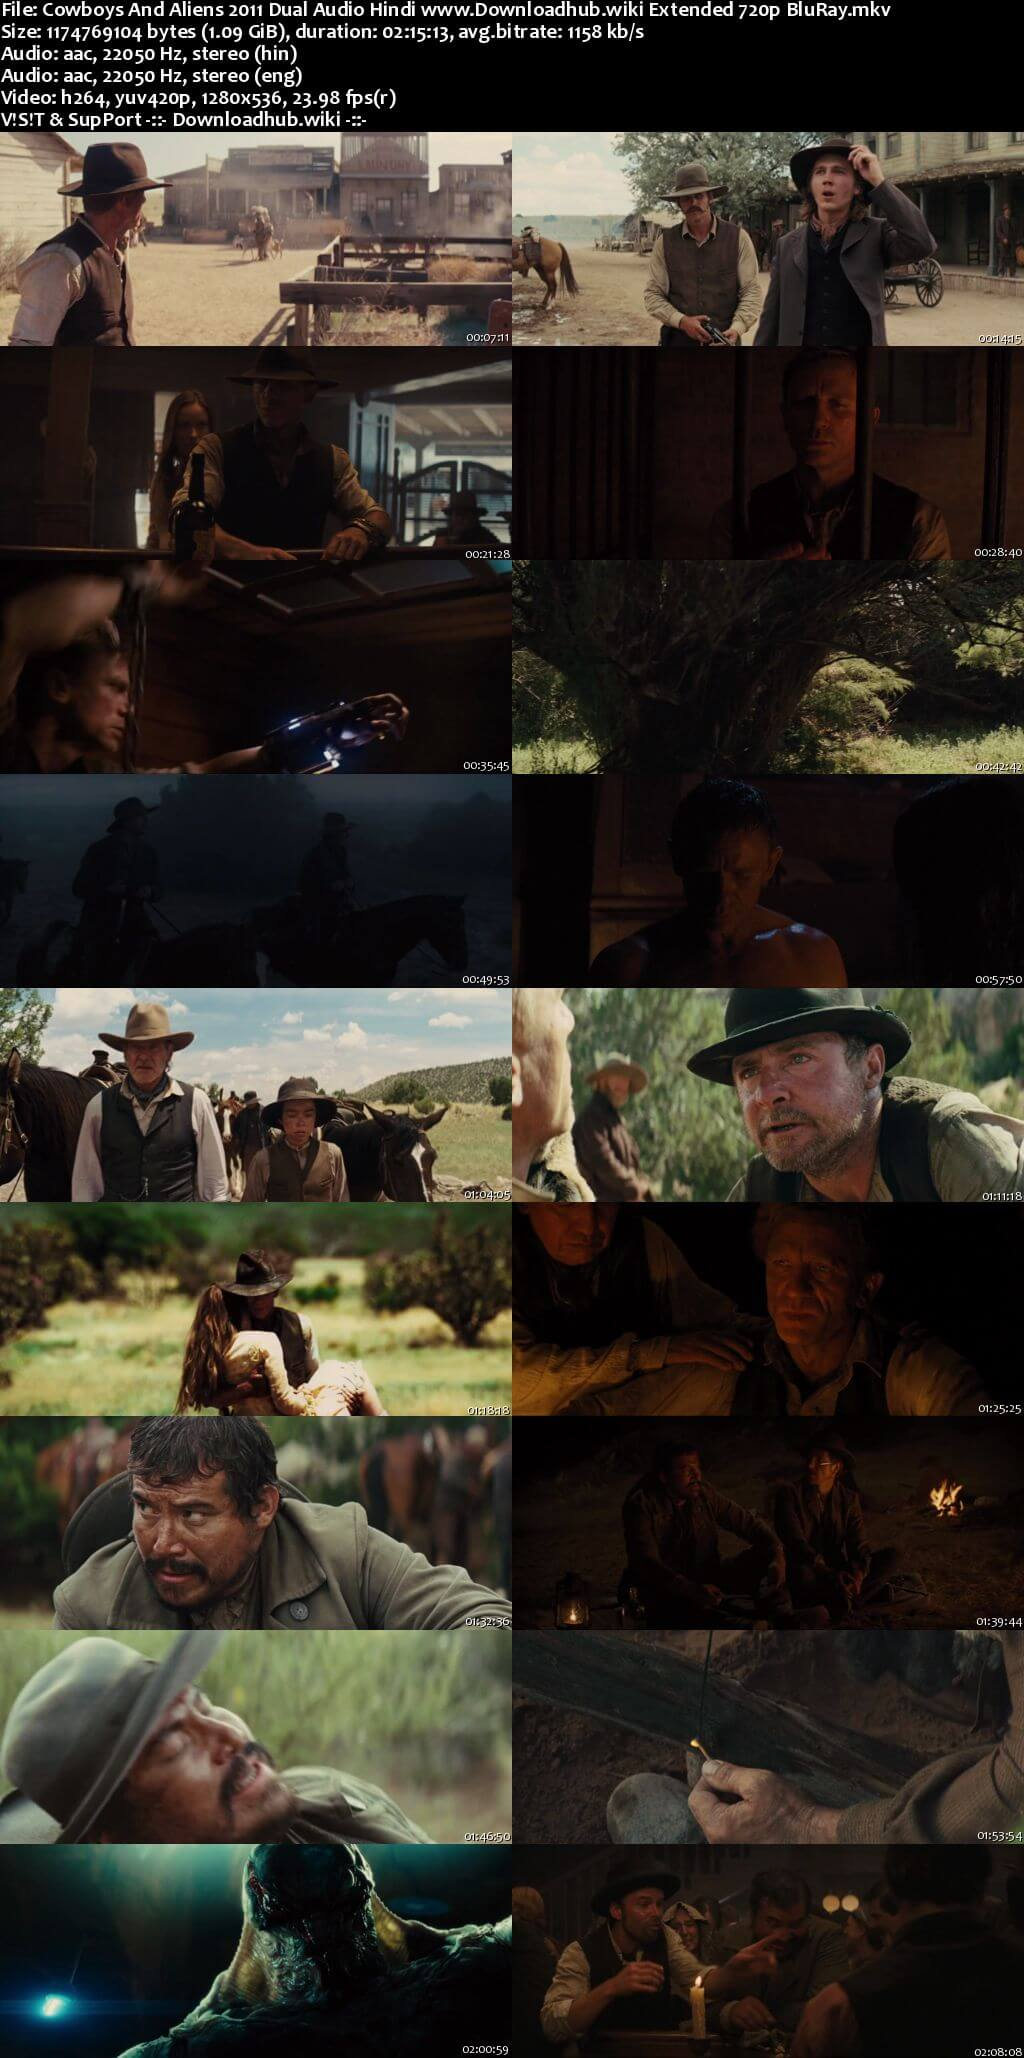 Cowboys And Aliens 2011 Hindi Dual Audio 720p EXTENDED BluRay ESubs